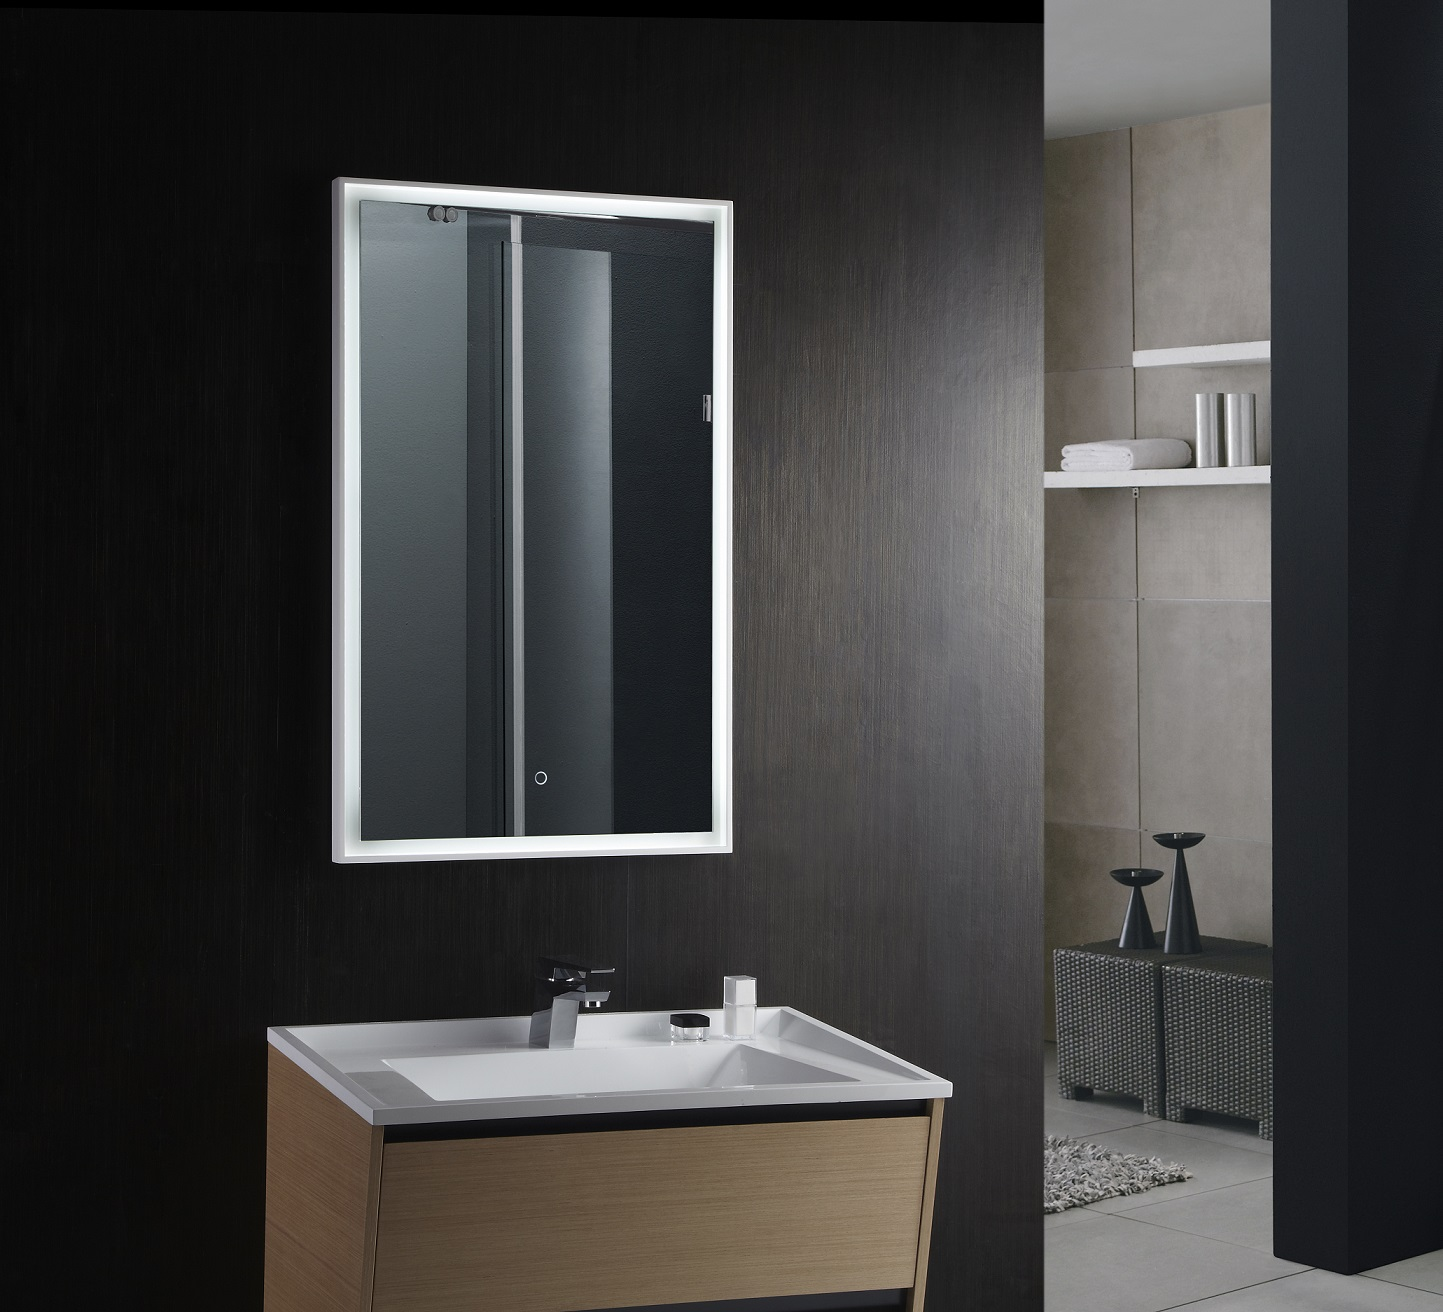 fiori lighted vanity mirror led bathroom mirror. Black Bedroom Furniture Sets. Home Design Ideas